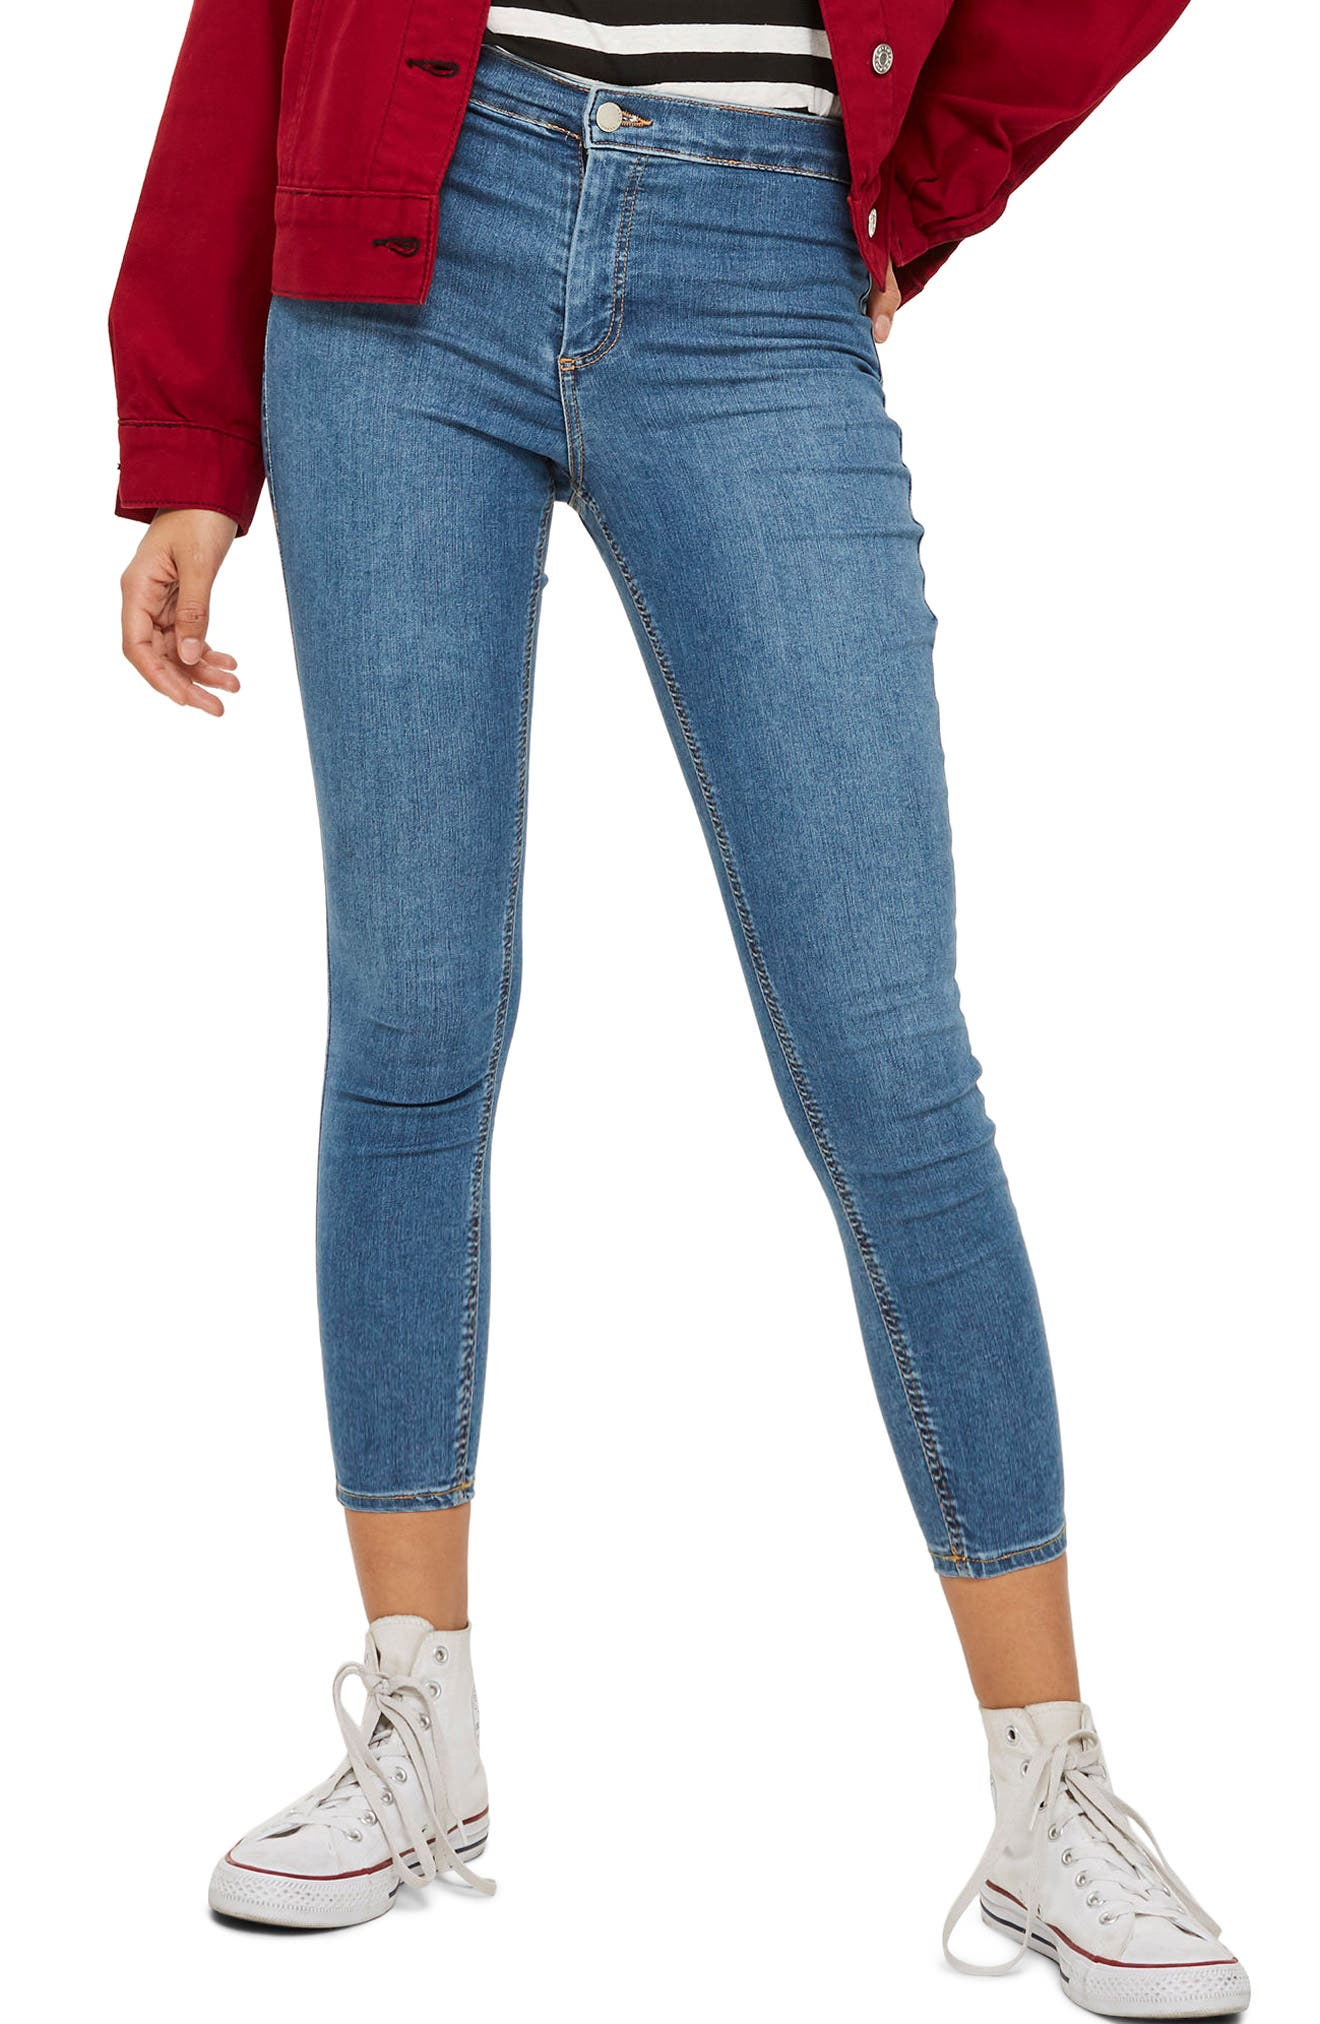 Joni Skinny Jeans,                             Main thumbnail 1, color,                             Mid Denim